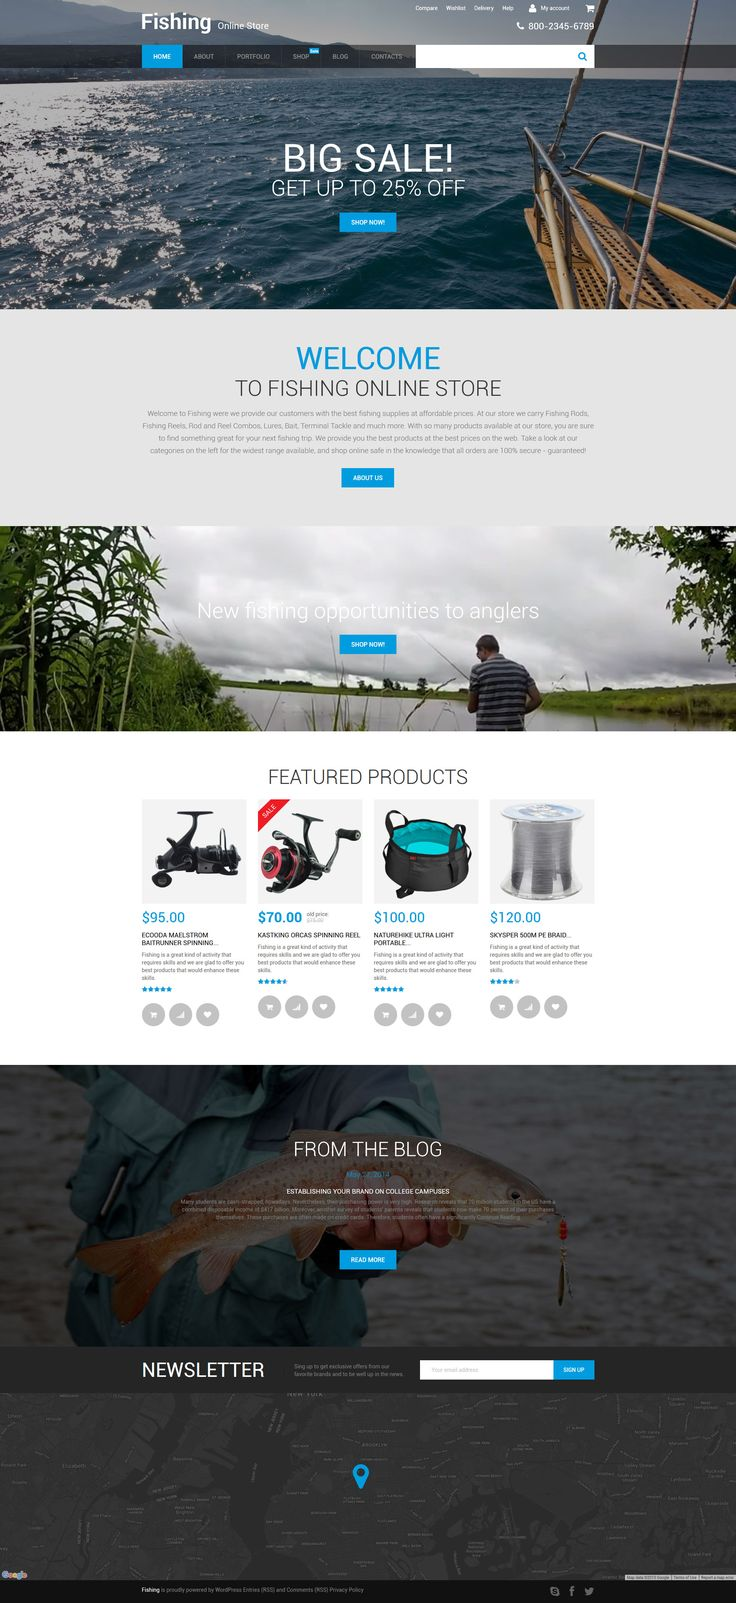 This fishing WooCommerce WordPress theme is a one-stop solution for online stores selling stuff for sports and hobbies. It includes a transparent dropdown menu with category badges, large immersive...